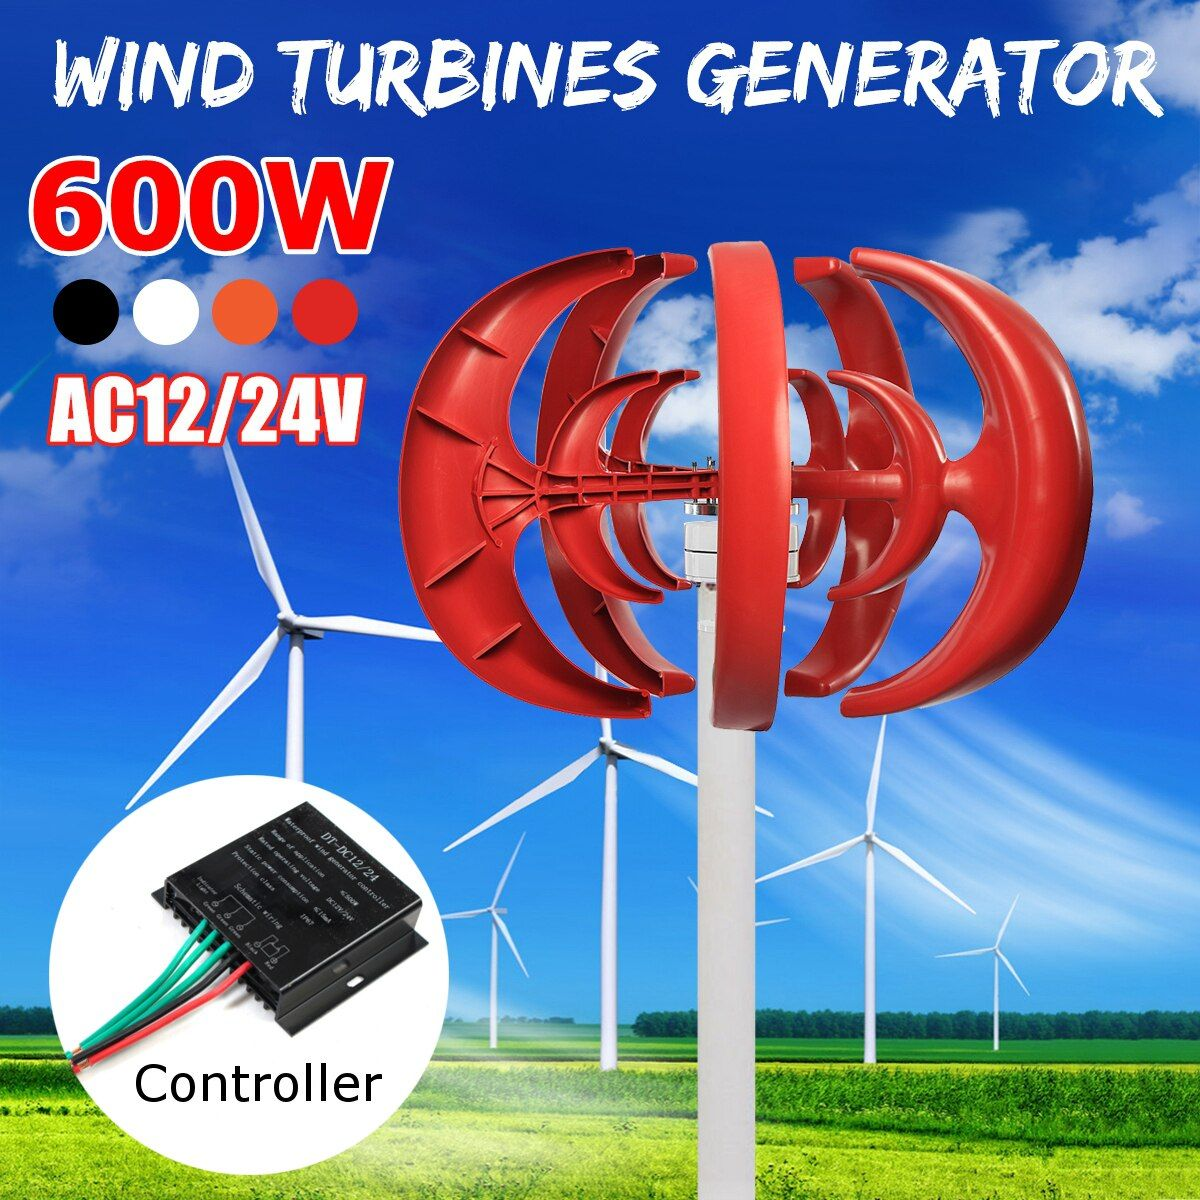 Wind Turbine Max 600W DC 12V 24V Combine With 600W English Wind Generator Controller Home For Home Hybrid Streetlight Use